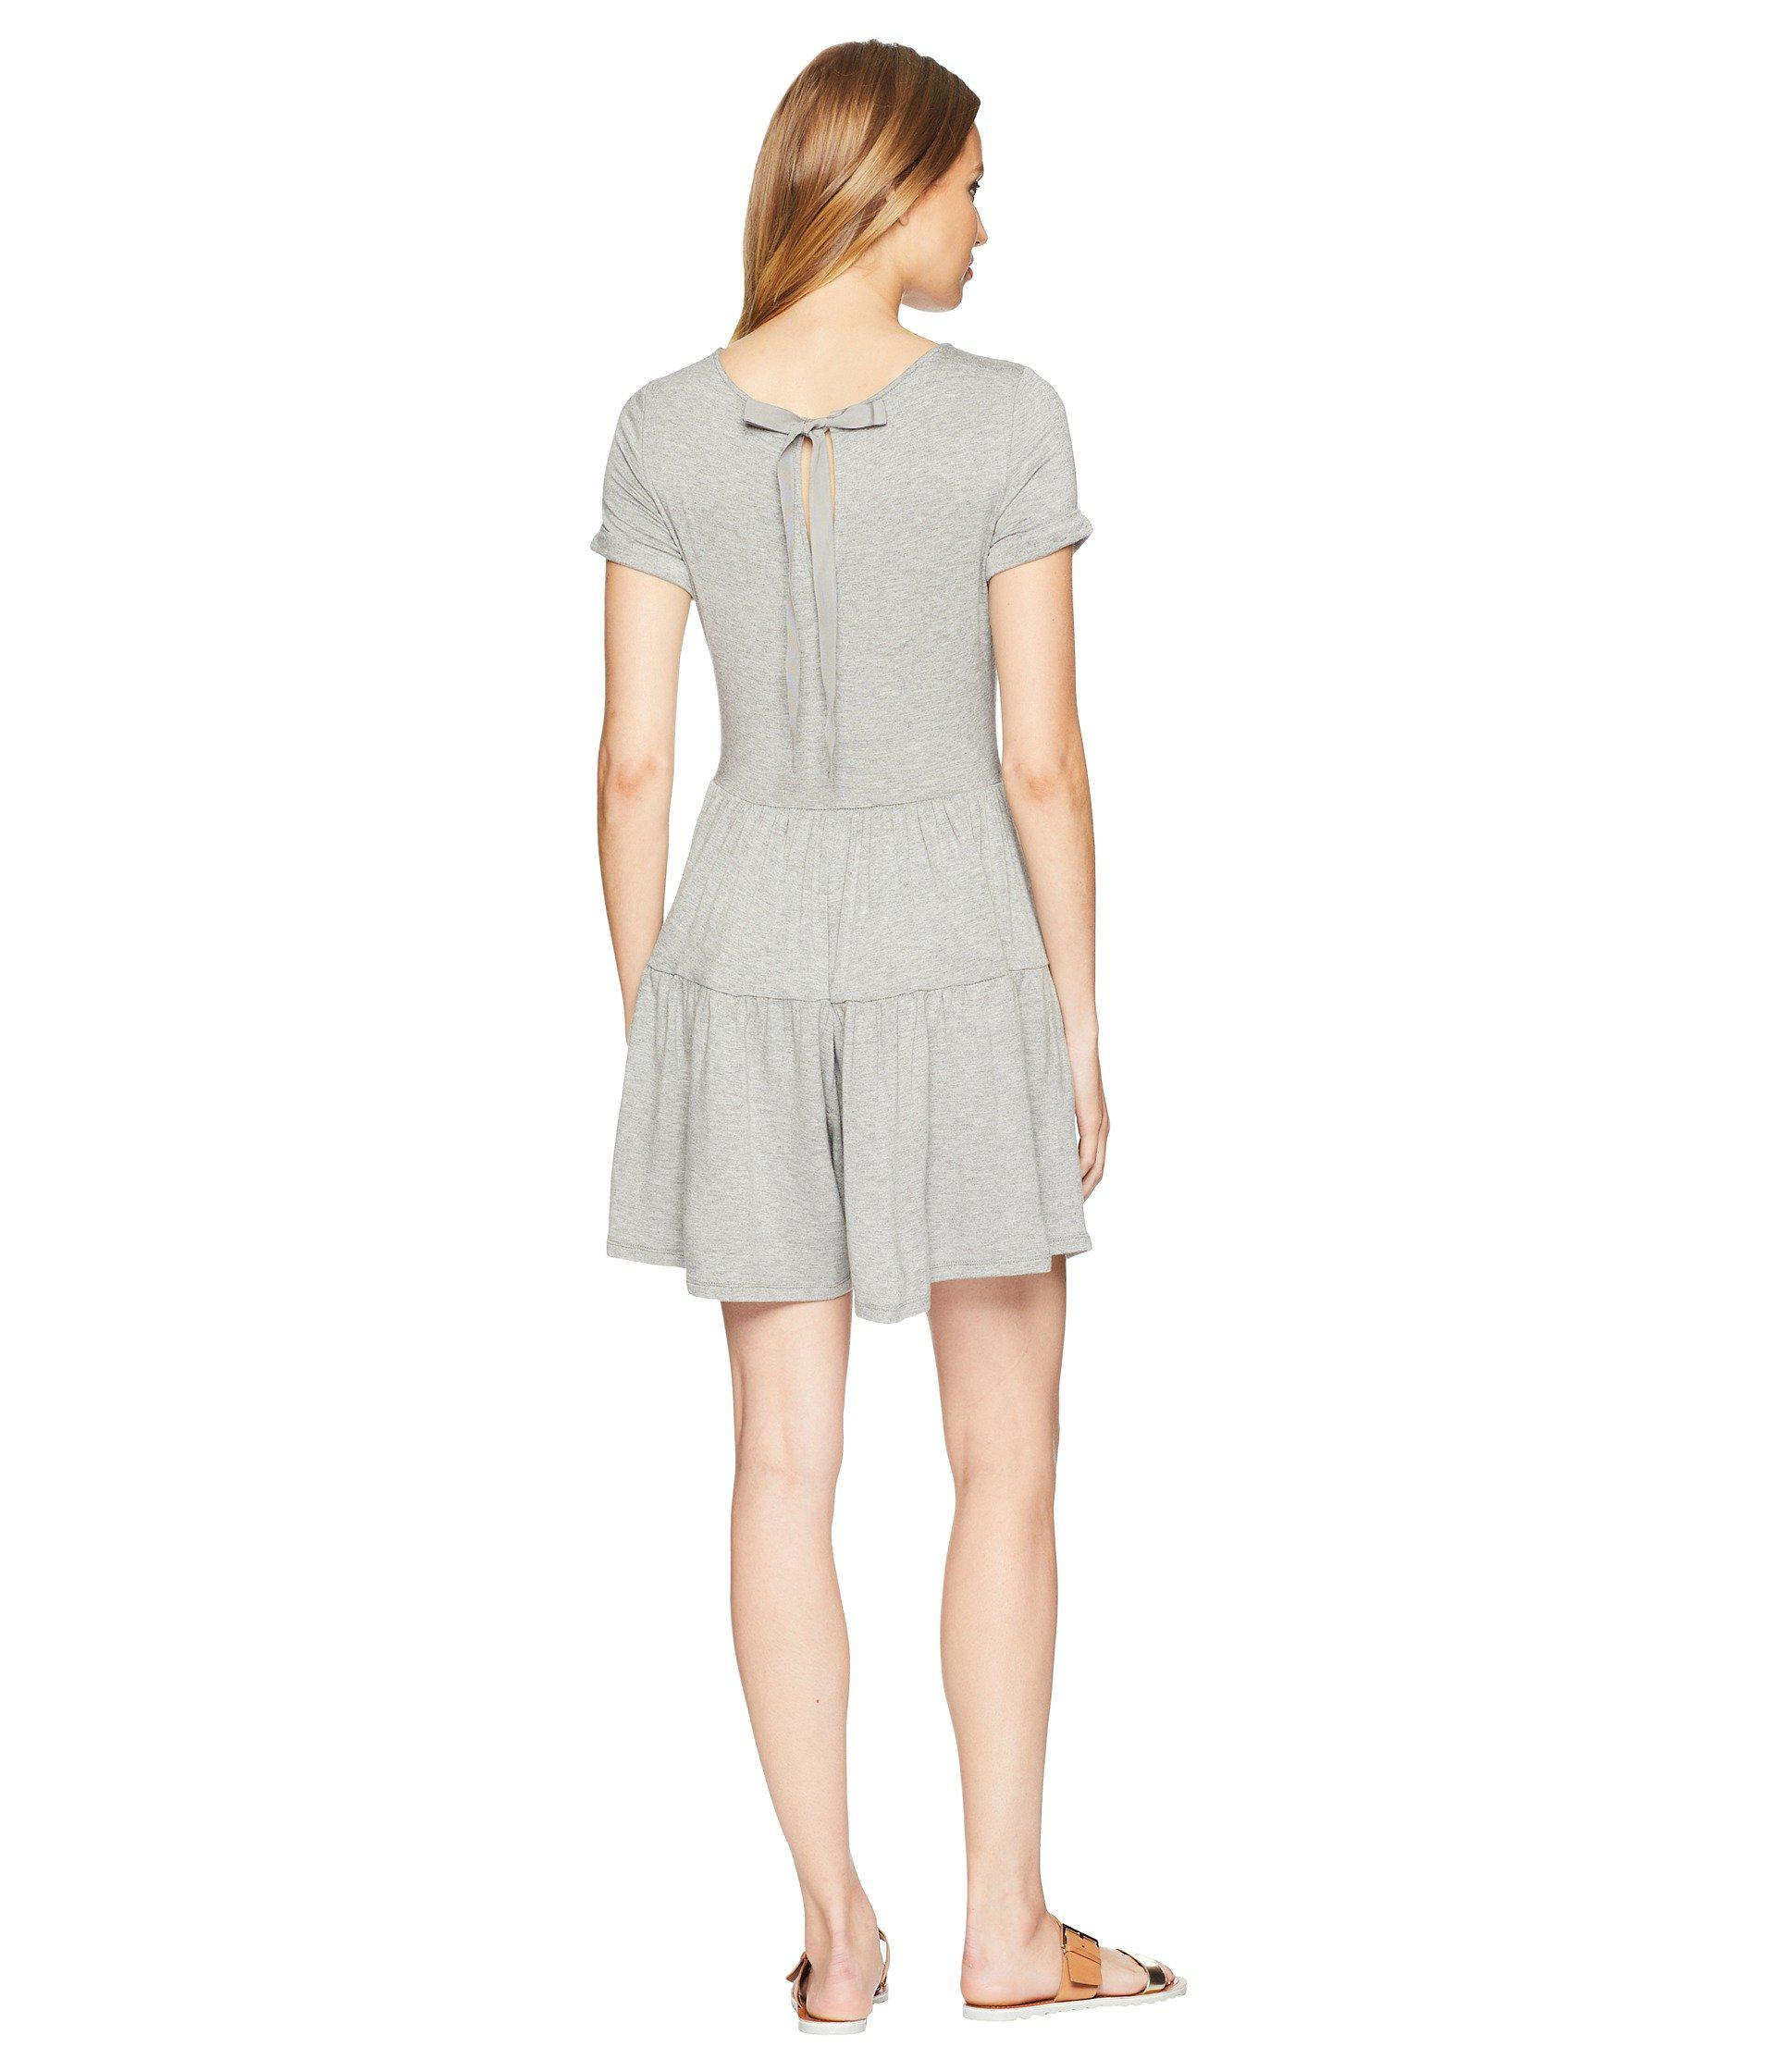 38a0059ad8f2 Lyst - Kensie Lightweight French Terry Romper With Ribbon Tie Back ...